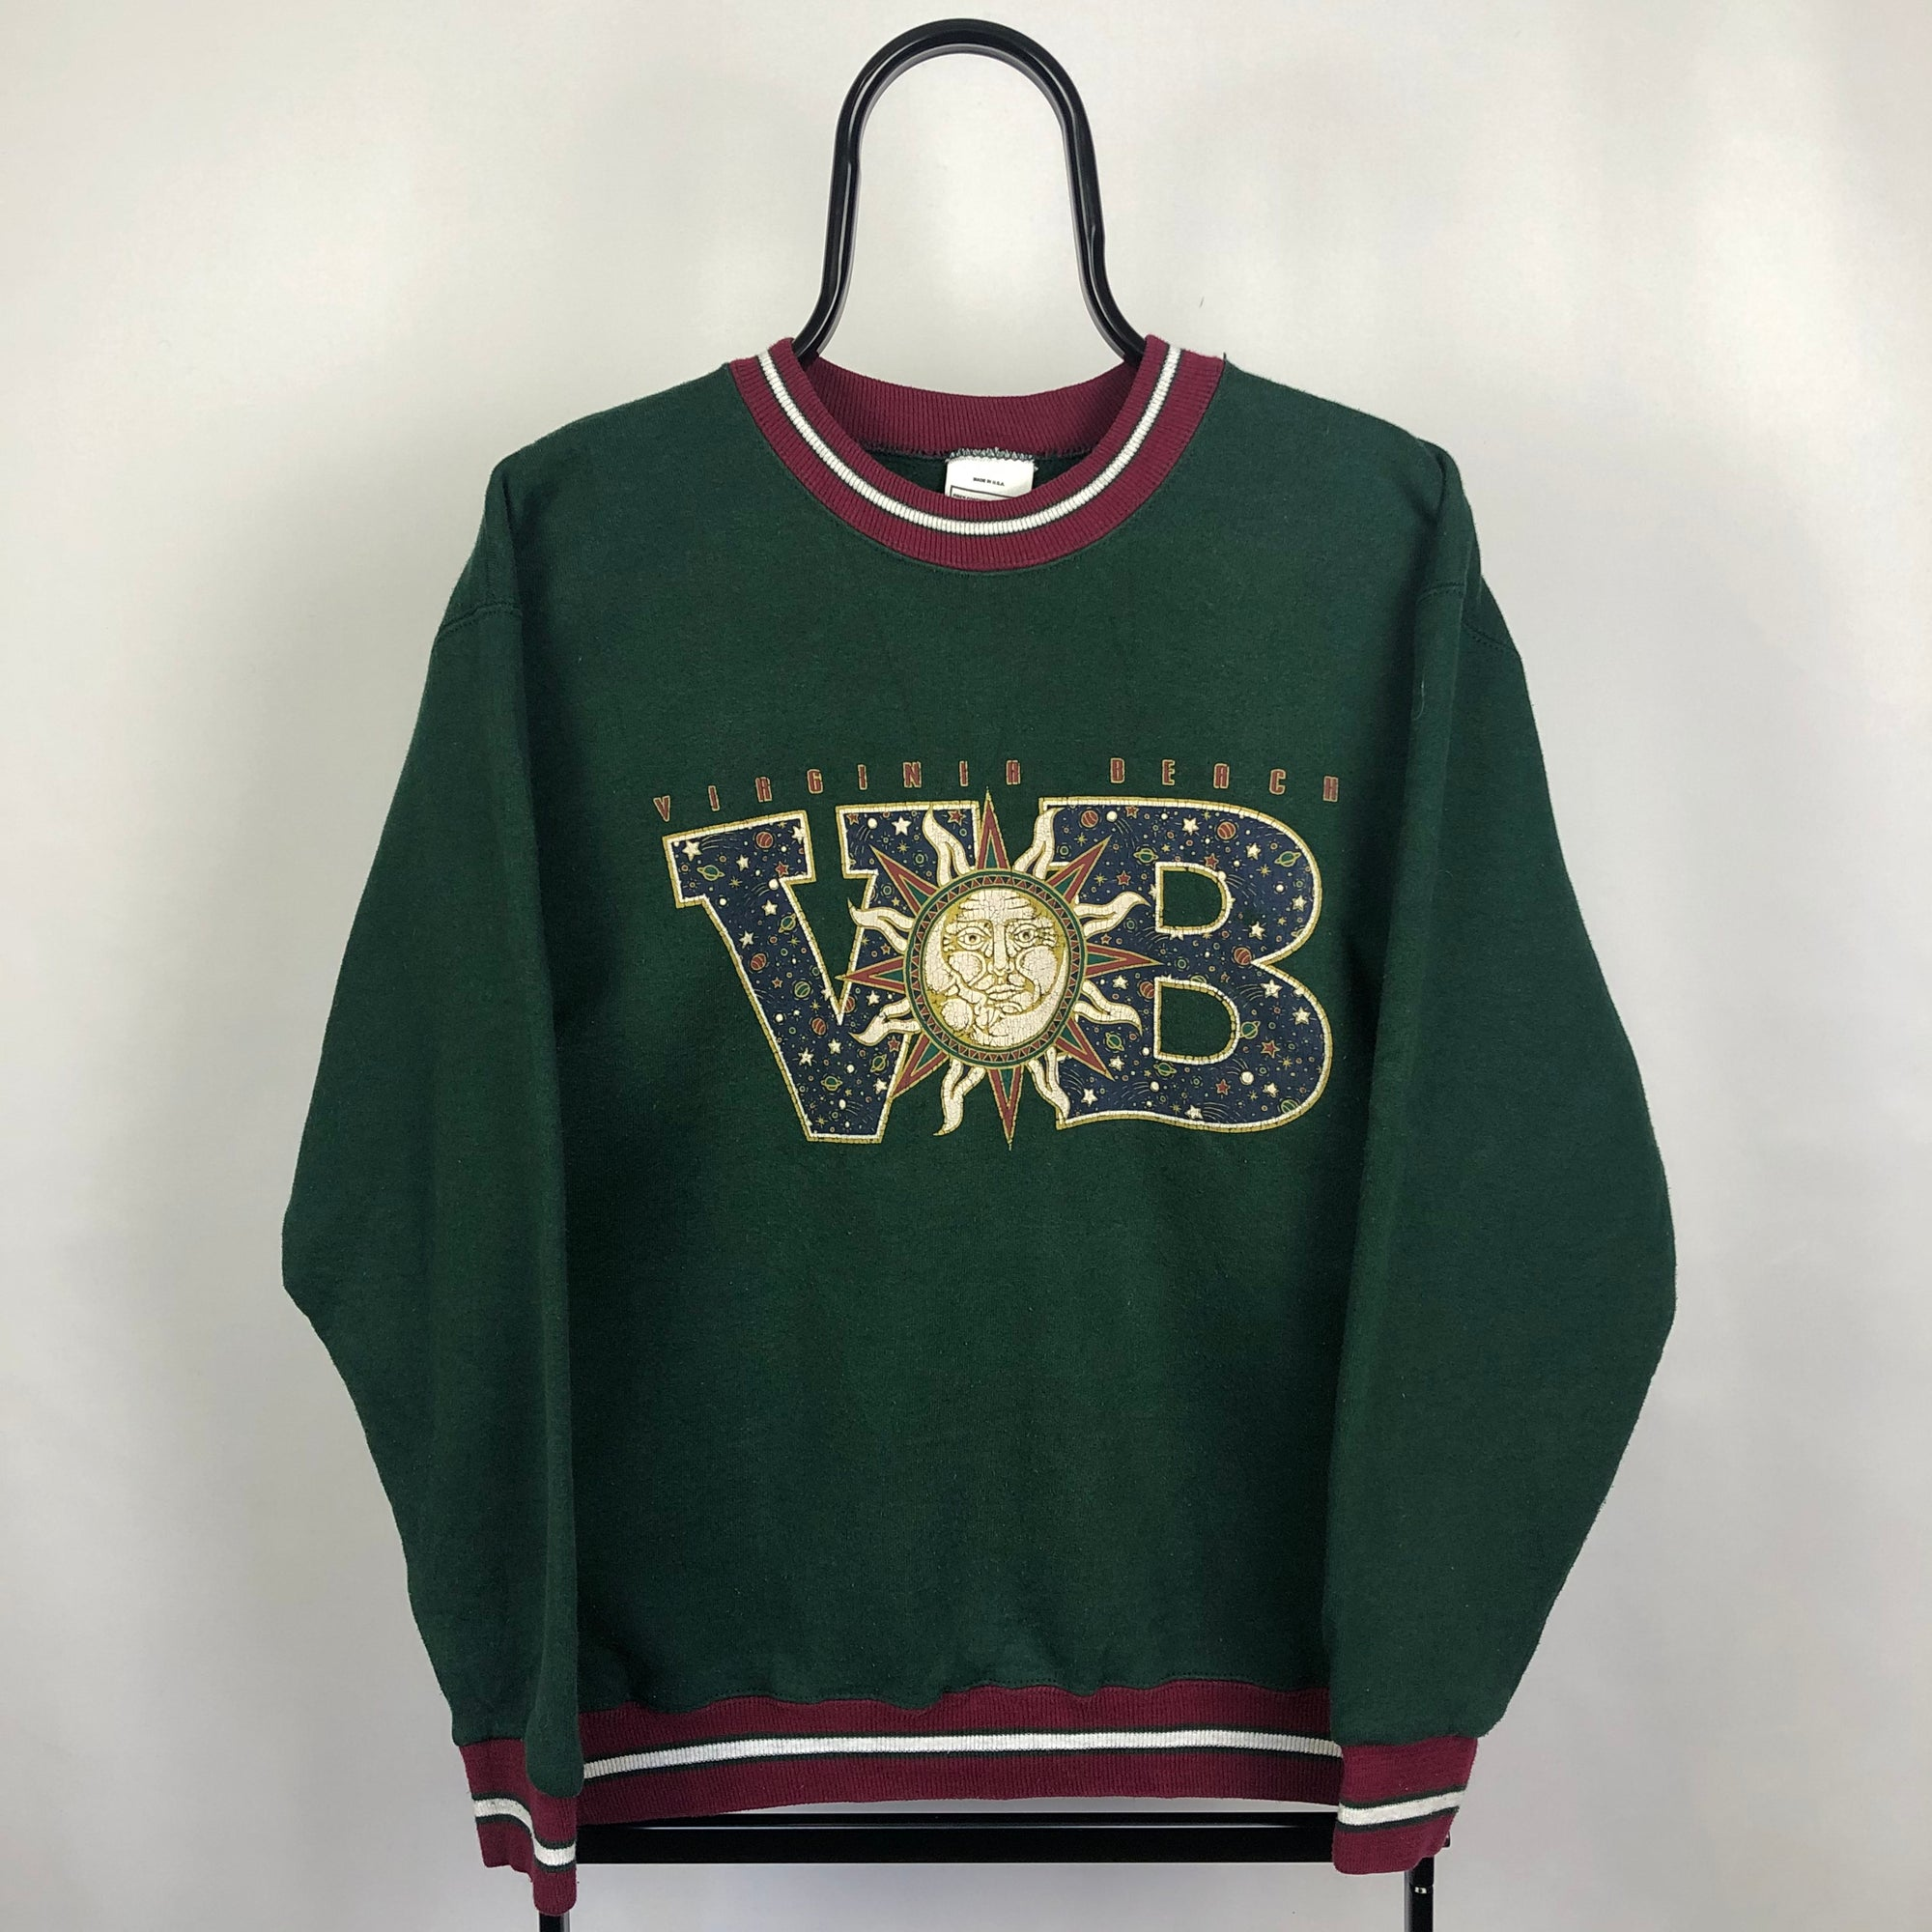 Vintage 'Virginia Beach' Sweatshirt - Men's Small/Women's Medium